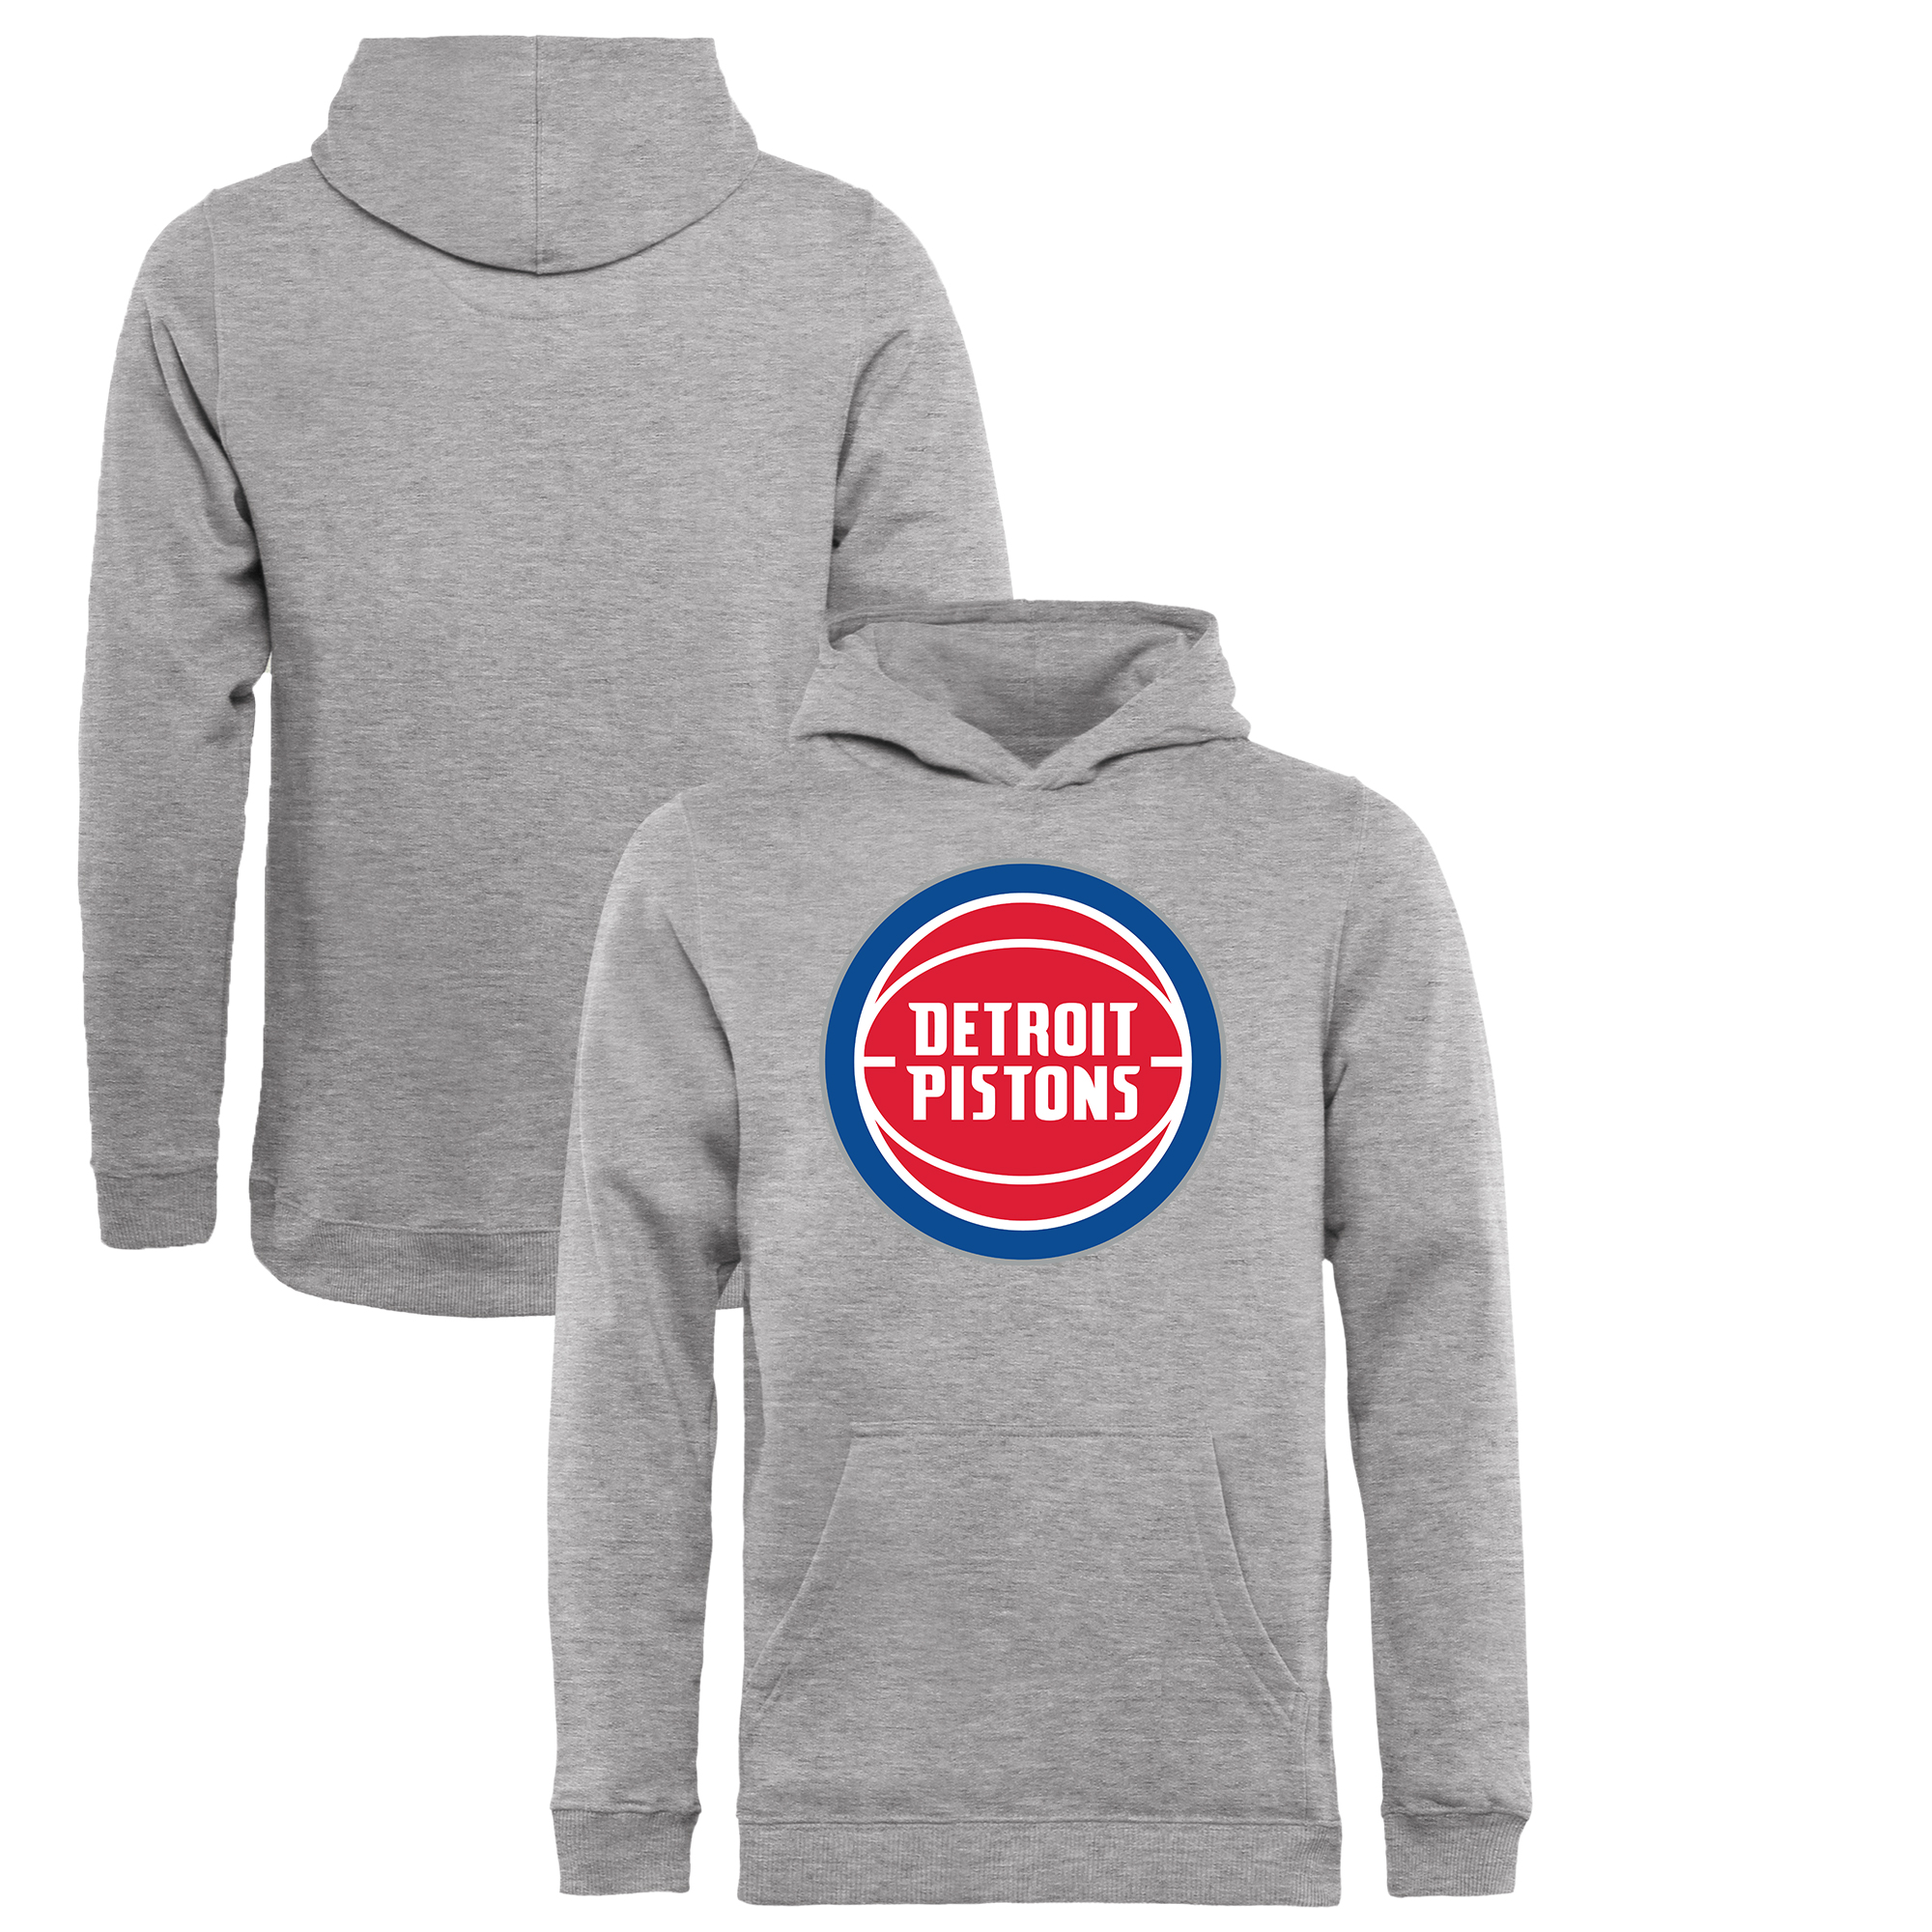 Detroit Pistons Fanatics Branded Youth Primary Logo Pullover Hoodie - Heathered Gray